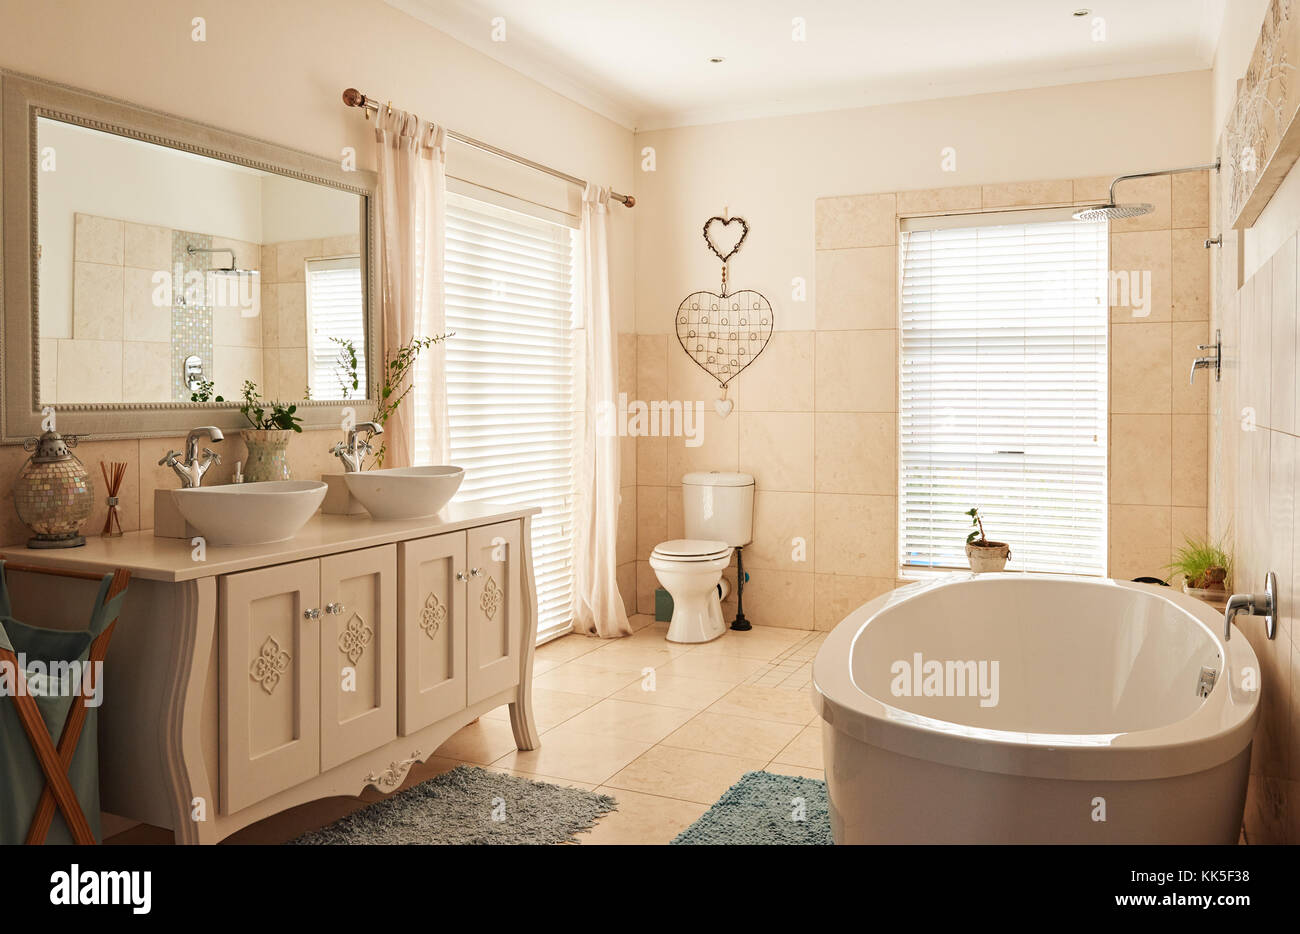 Interior of a spacious classically styled bathroom - Stock Image